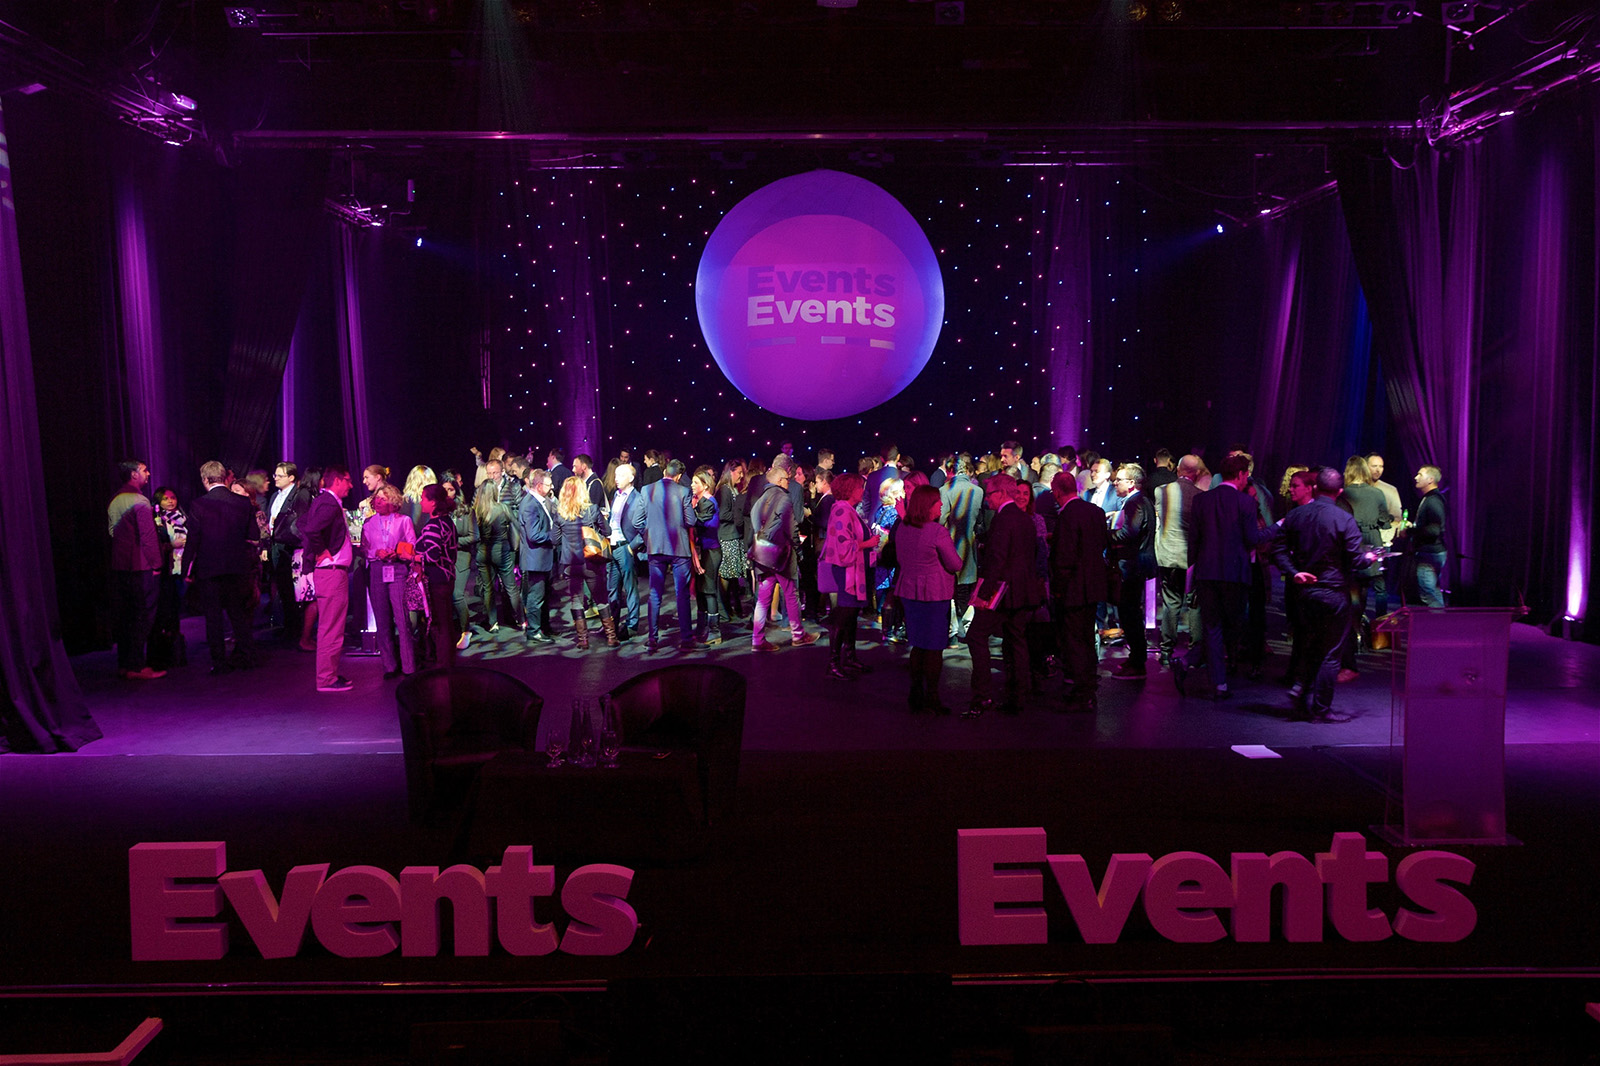 EventsEvents at The Mermaid London (4)